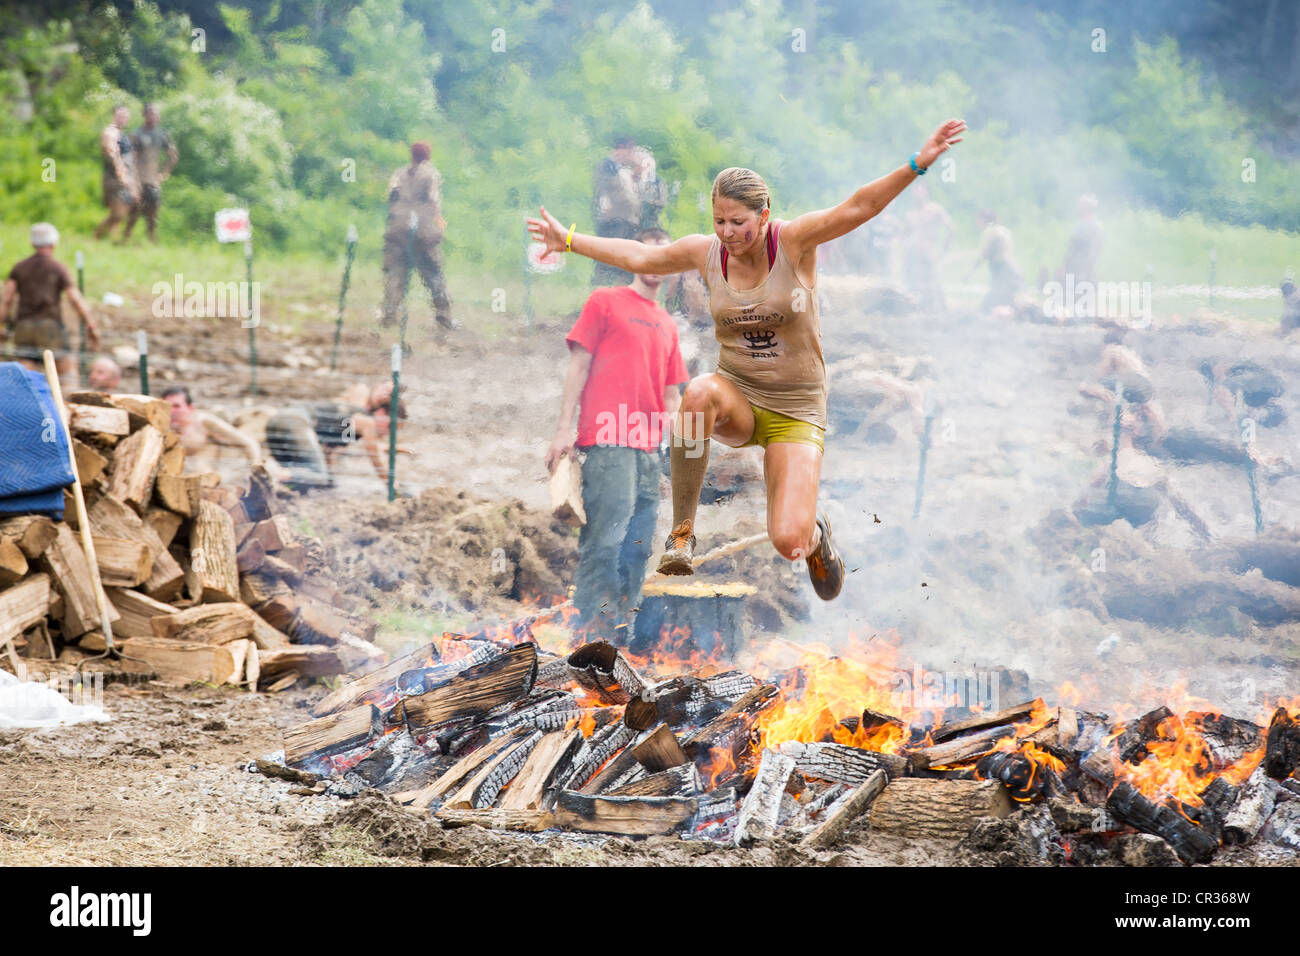 Participants of challenging sprint obstacle trail race, Spartan Race in Tuxedo New York, running in mud, jumping - Stock Image